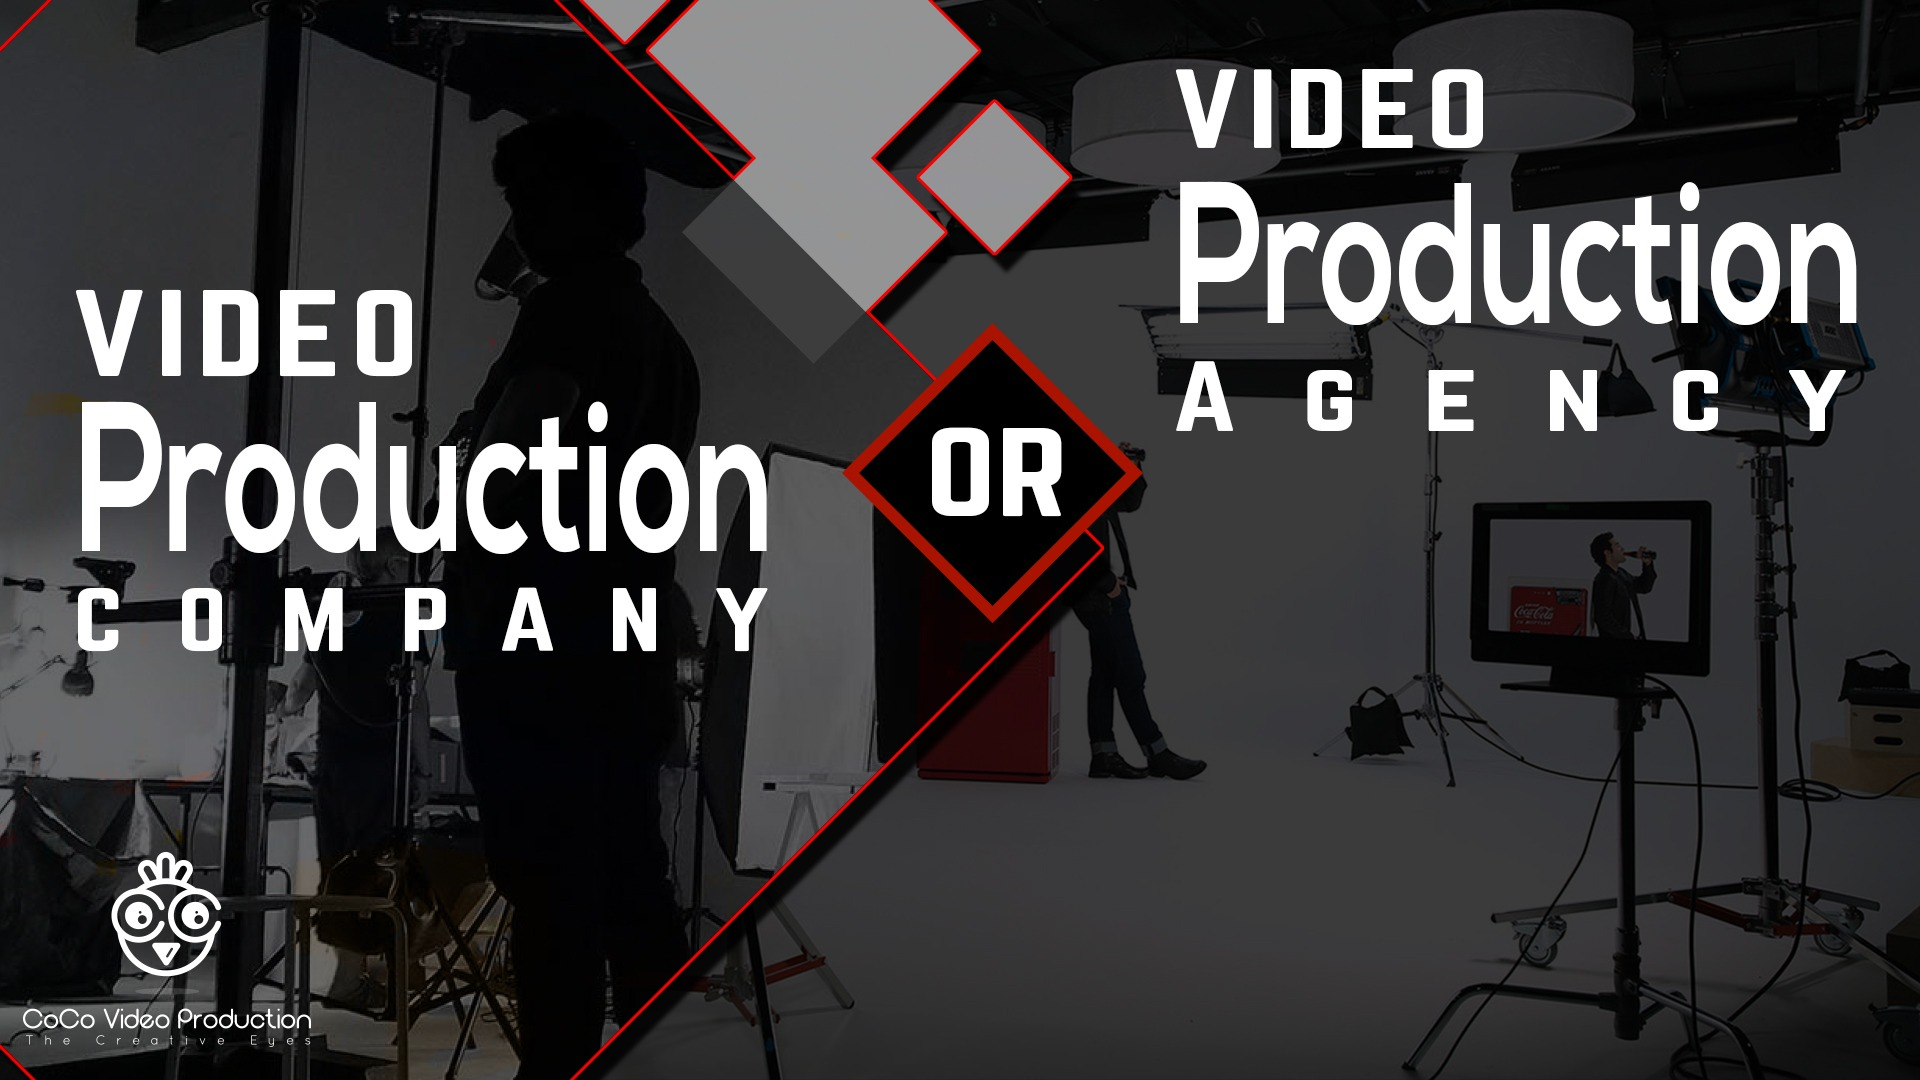 Video Production Company or Video Production Agency - Explainer Video and Animation Company